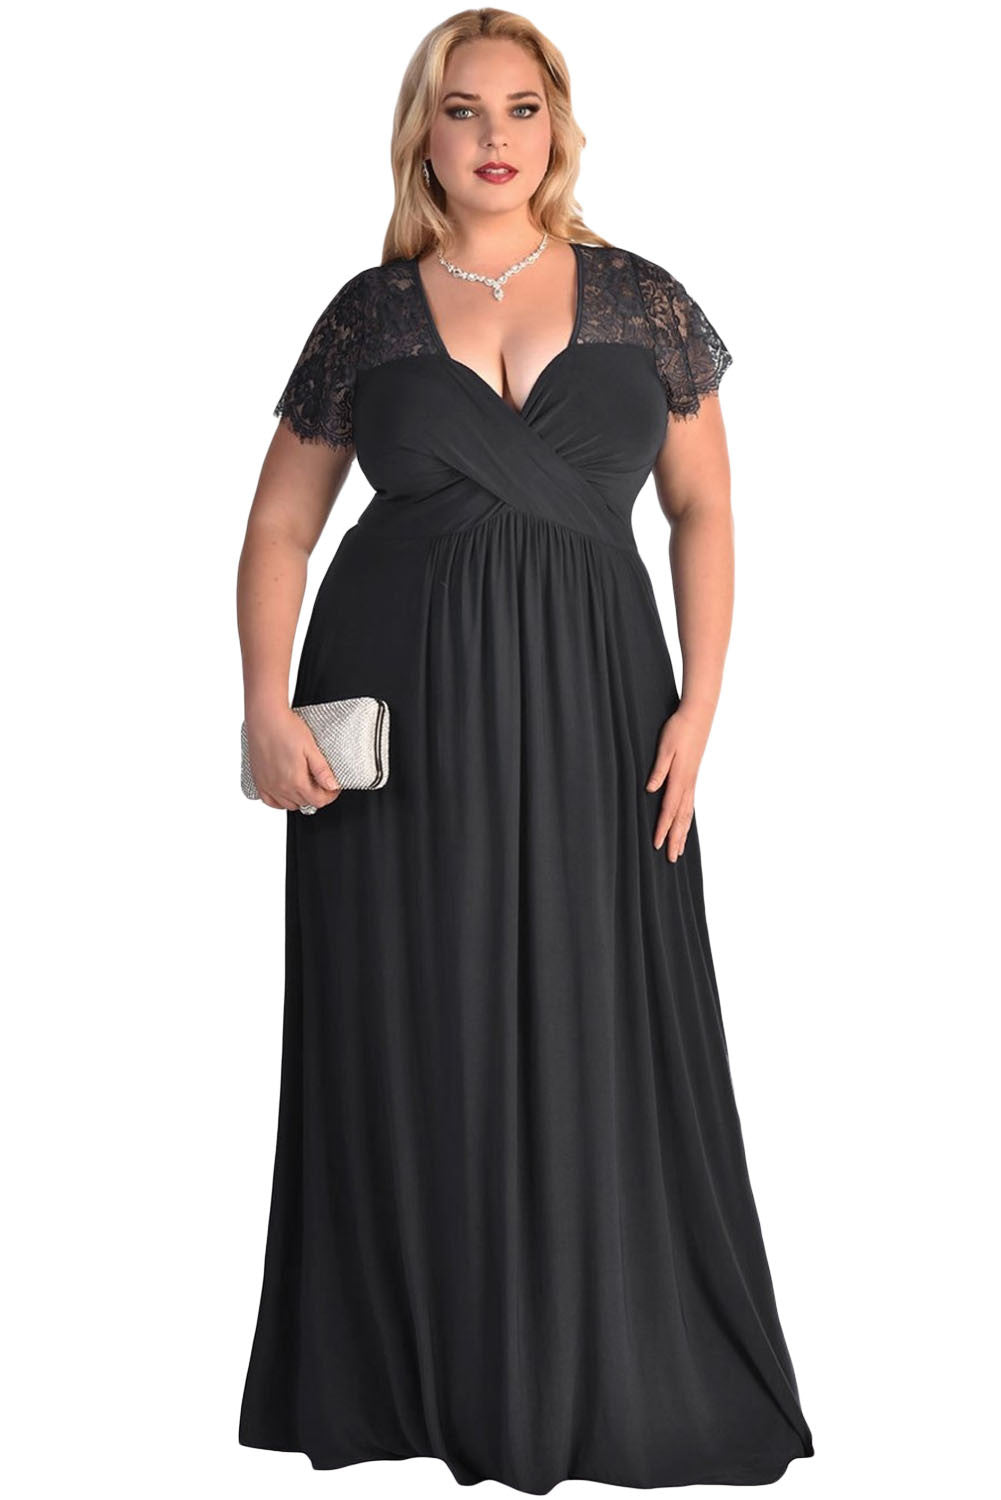 A  Chicloth Black Lace Yoke Ruched Twist High Waist Plus Size Gown